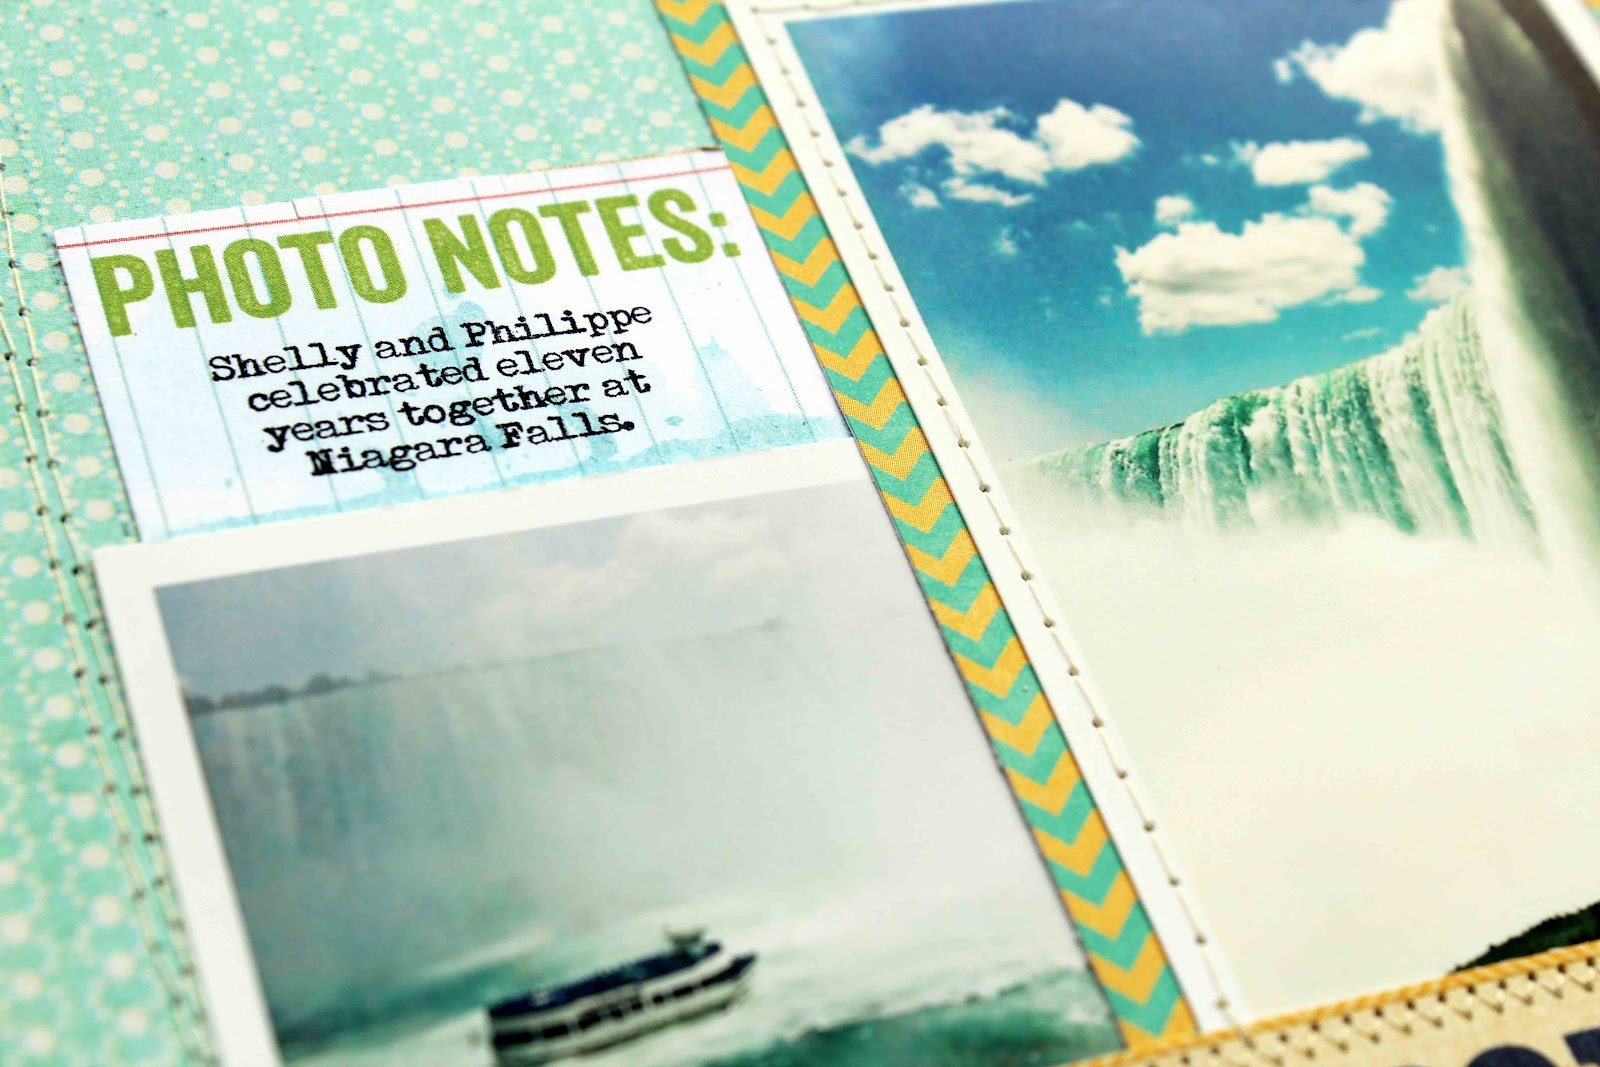 Scrapbook ideas niagara falls - I Should Also Add Another Requirement Of Mine When It Comes To Tags Labels And Journaling Cards They Should Welcome Alterations Like These Did When I